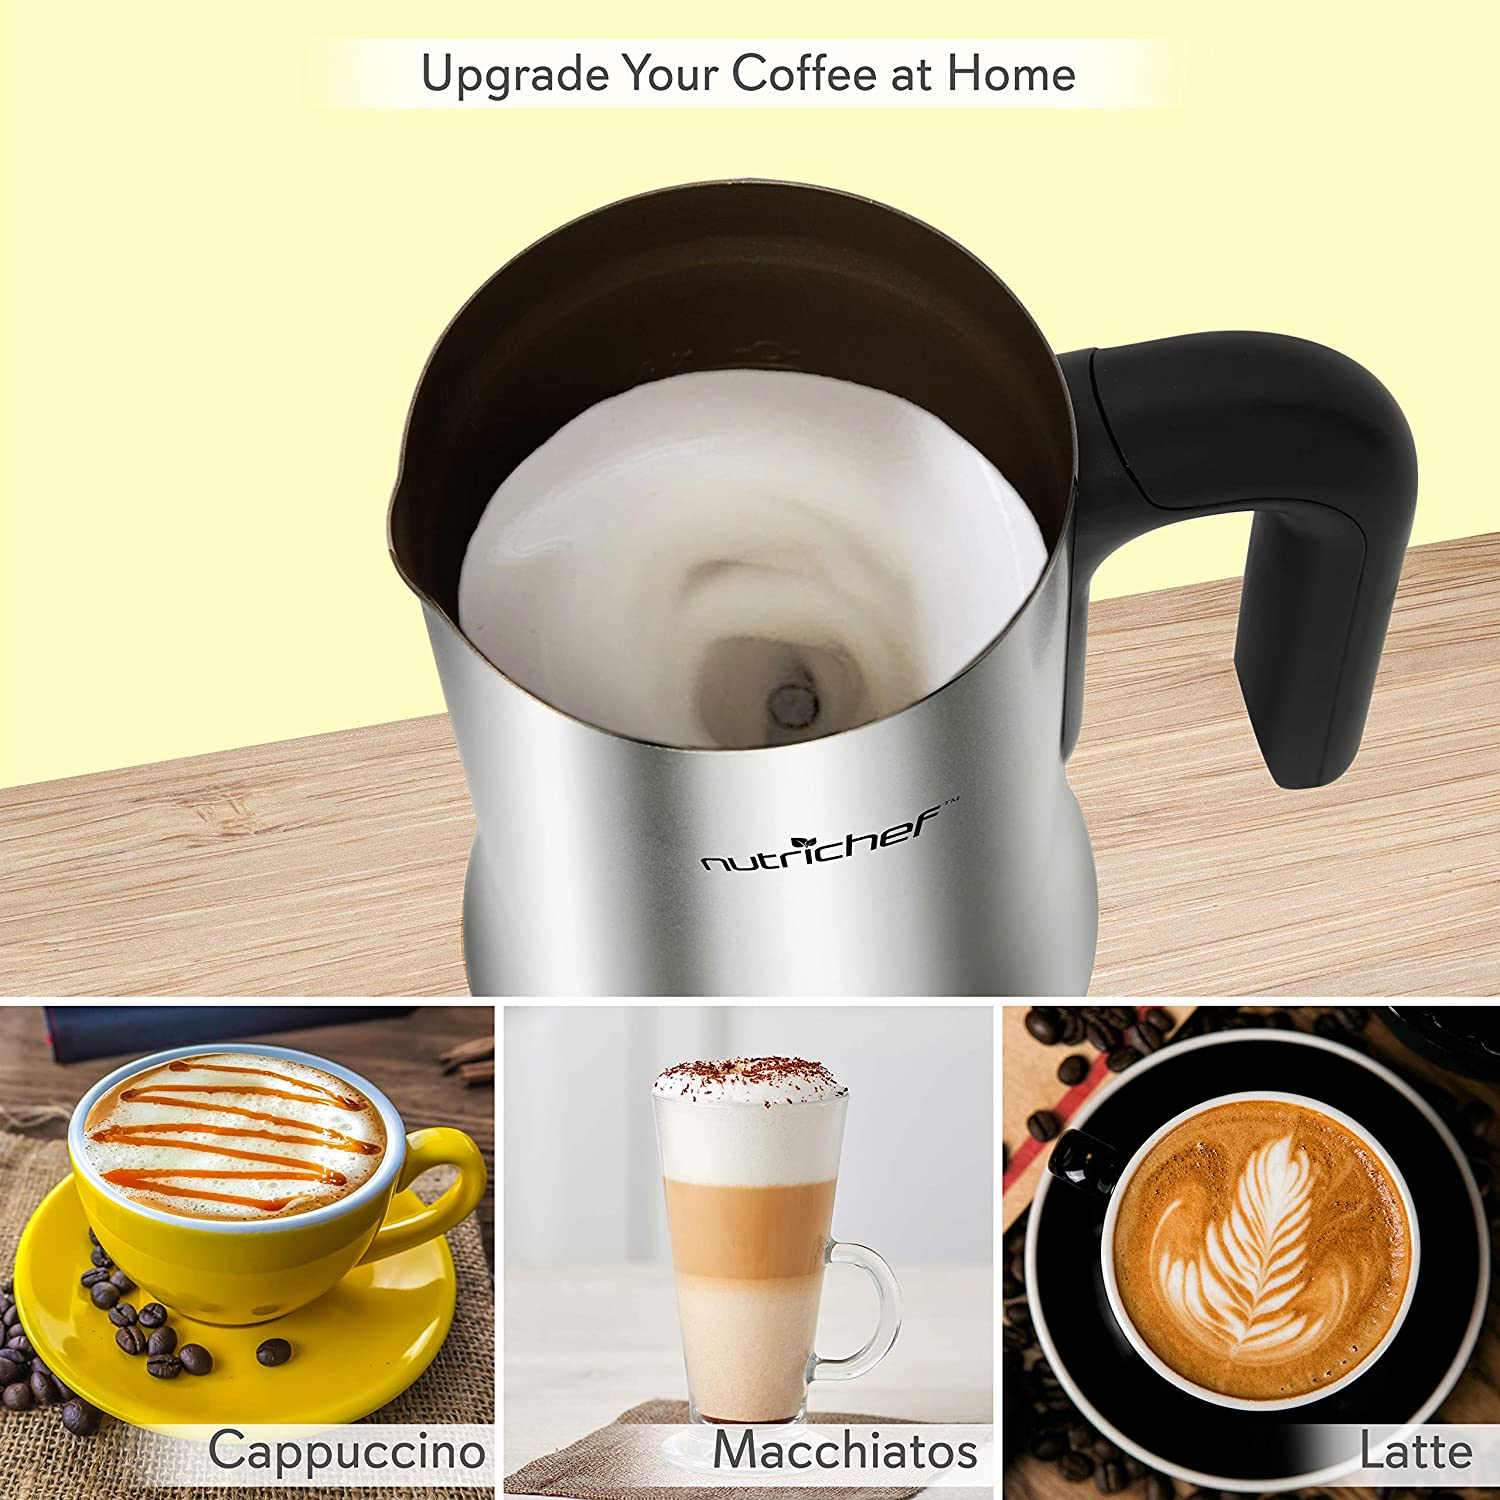 Electric Milk Warmer and Frother – 2-in-1 Automatic Hot or Cold Milk Steamer Heater Foamer Blender, Froth Foam Maker for Latte Cappuccino Coffee Drink, Silver Stainless Steel – NutriChef PKNESPRESO65